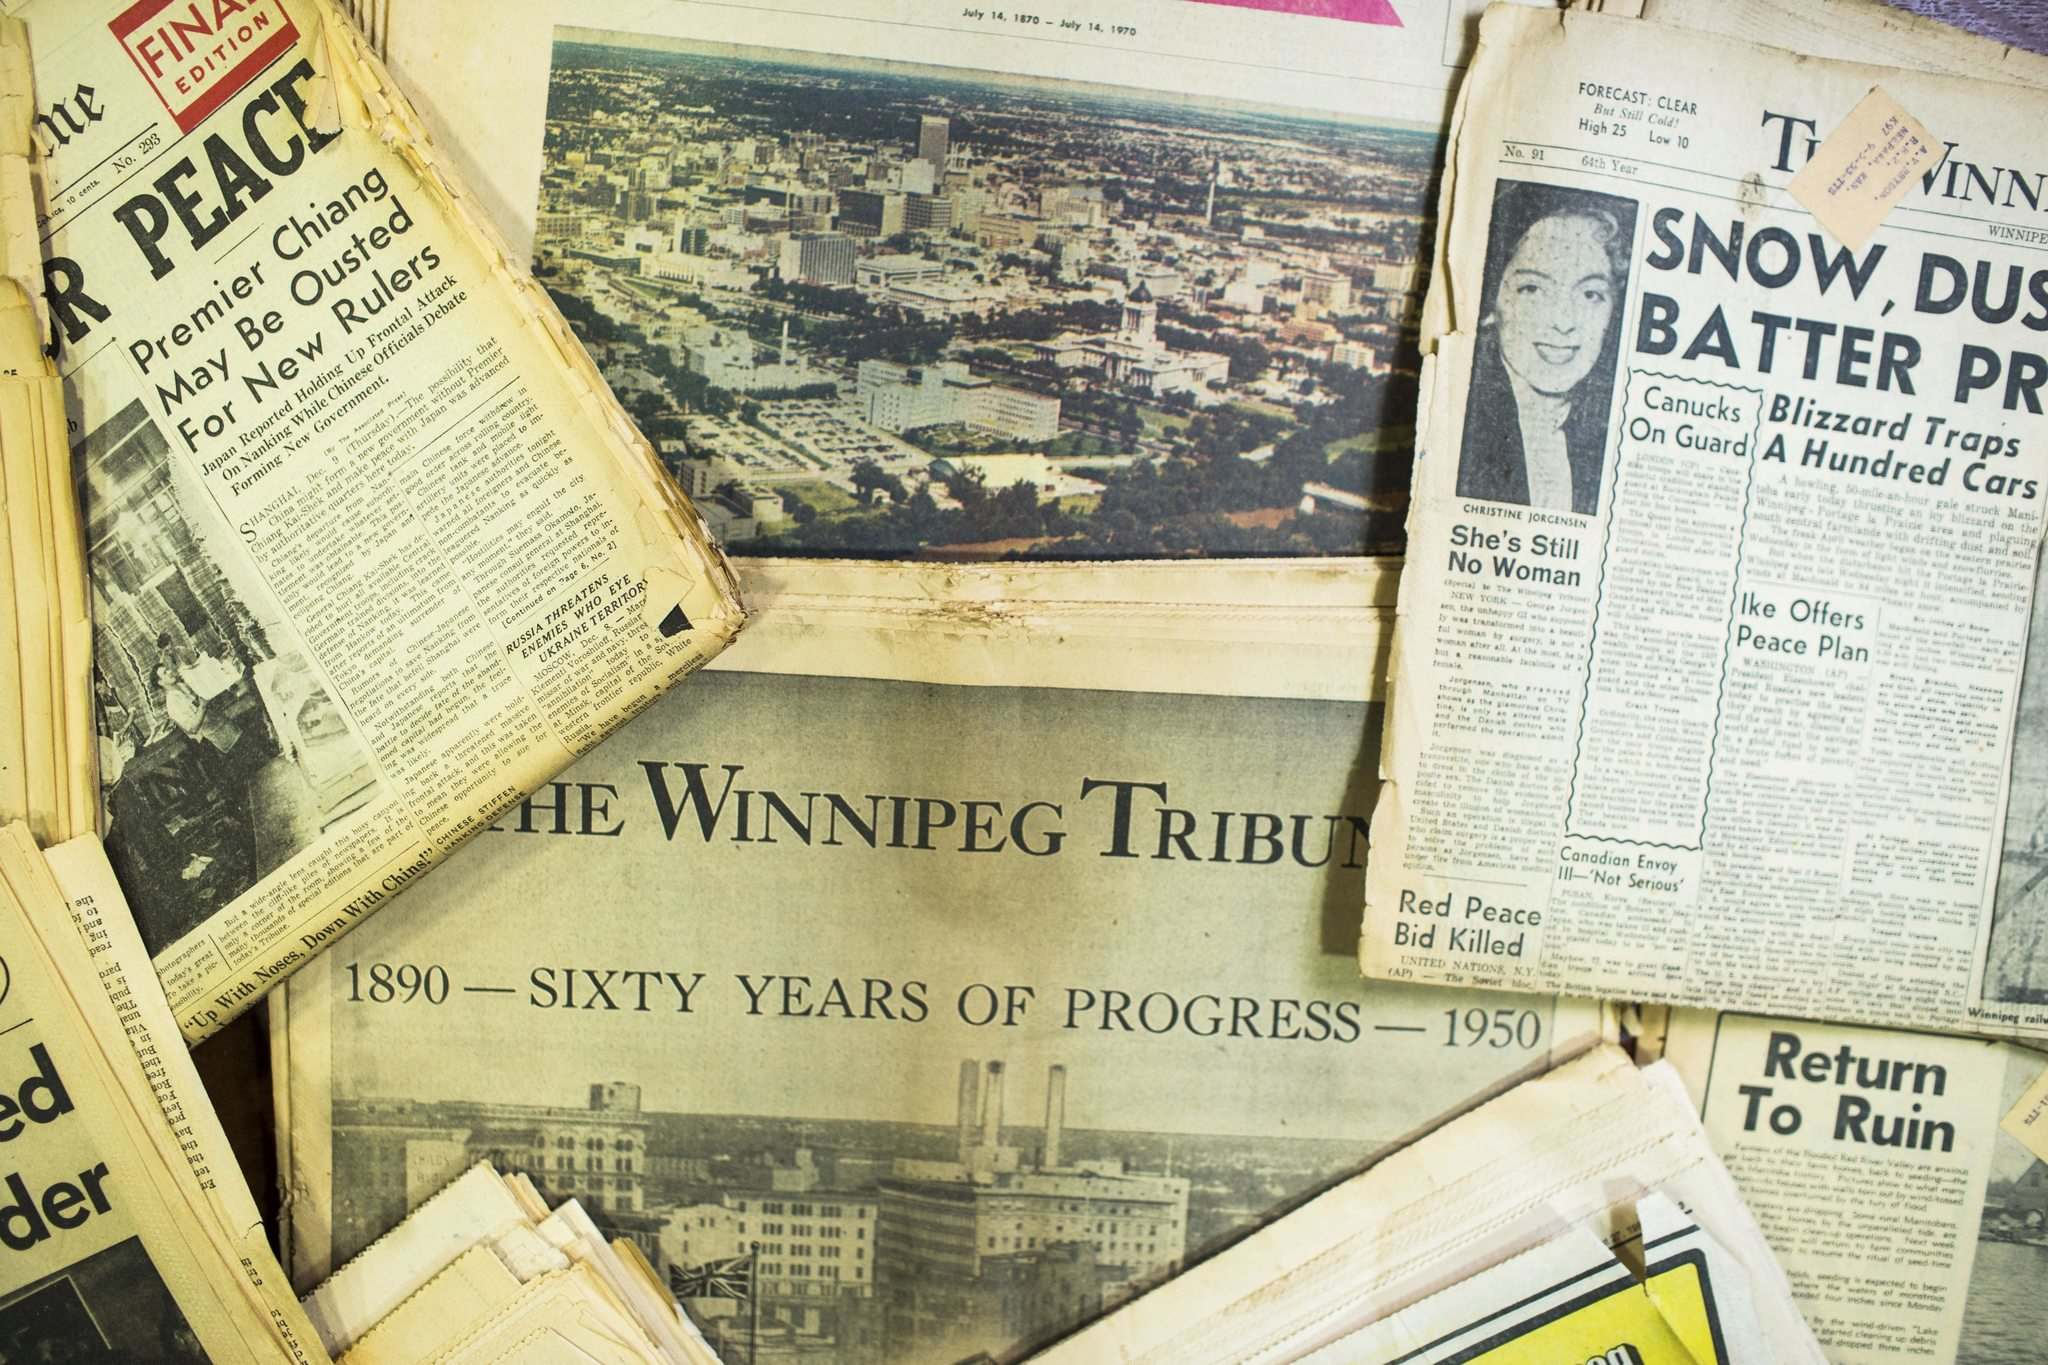 The Winnipeg Tribune was published for 90 years from 1890 until Aug. 27, 1980. (Mikaela MacKenzie / Winnipeg Free Press)